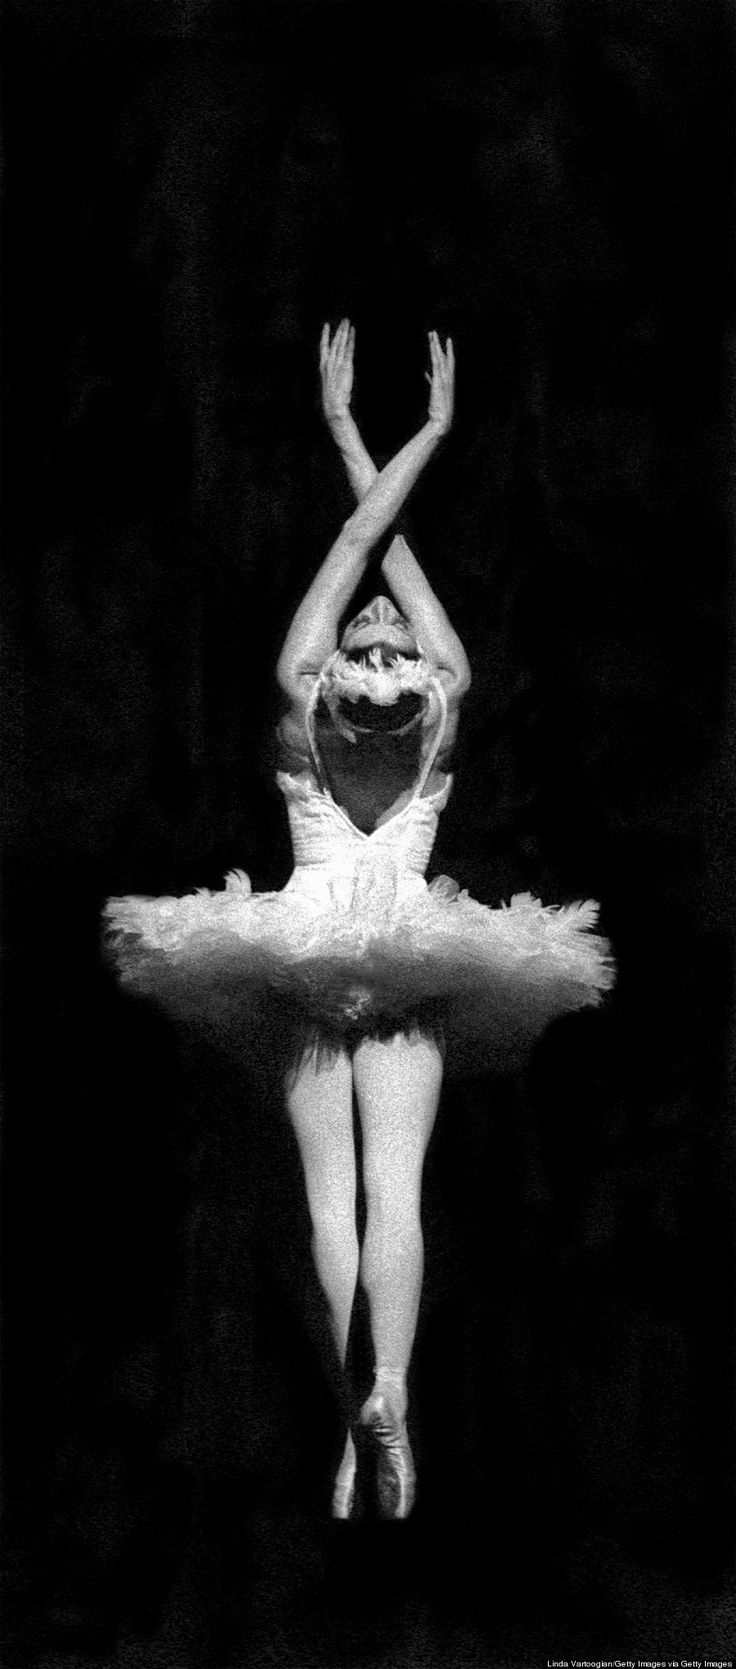 """ussian ballet dancer Maya Plisetskaya performs Mikhail Fokine's """"The Dying Swan"""" with the Stars of the Bolshoi Ballet at the Metropolitan Opera House at Lincoln Center in New York on September 21, 1974. (Photo by Linda Vartoogian/Getty Images)"""